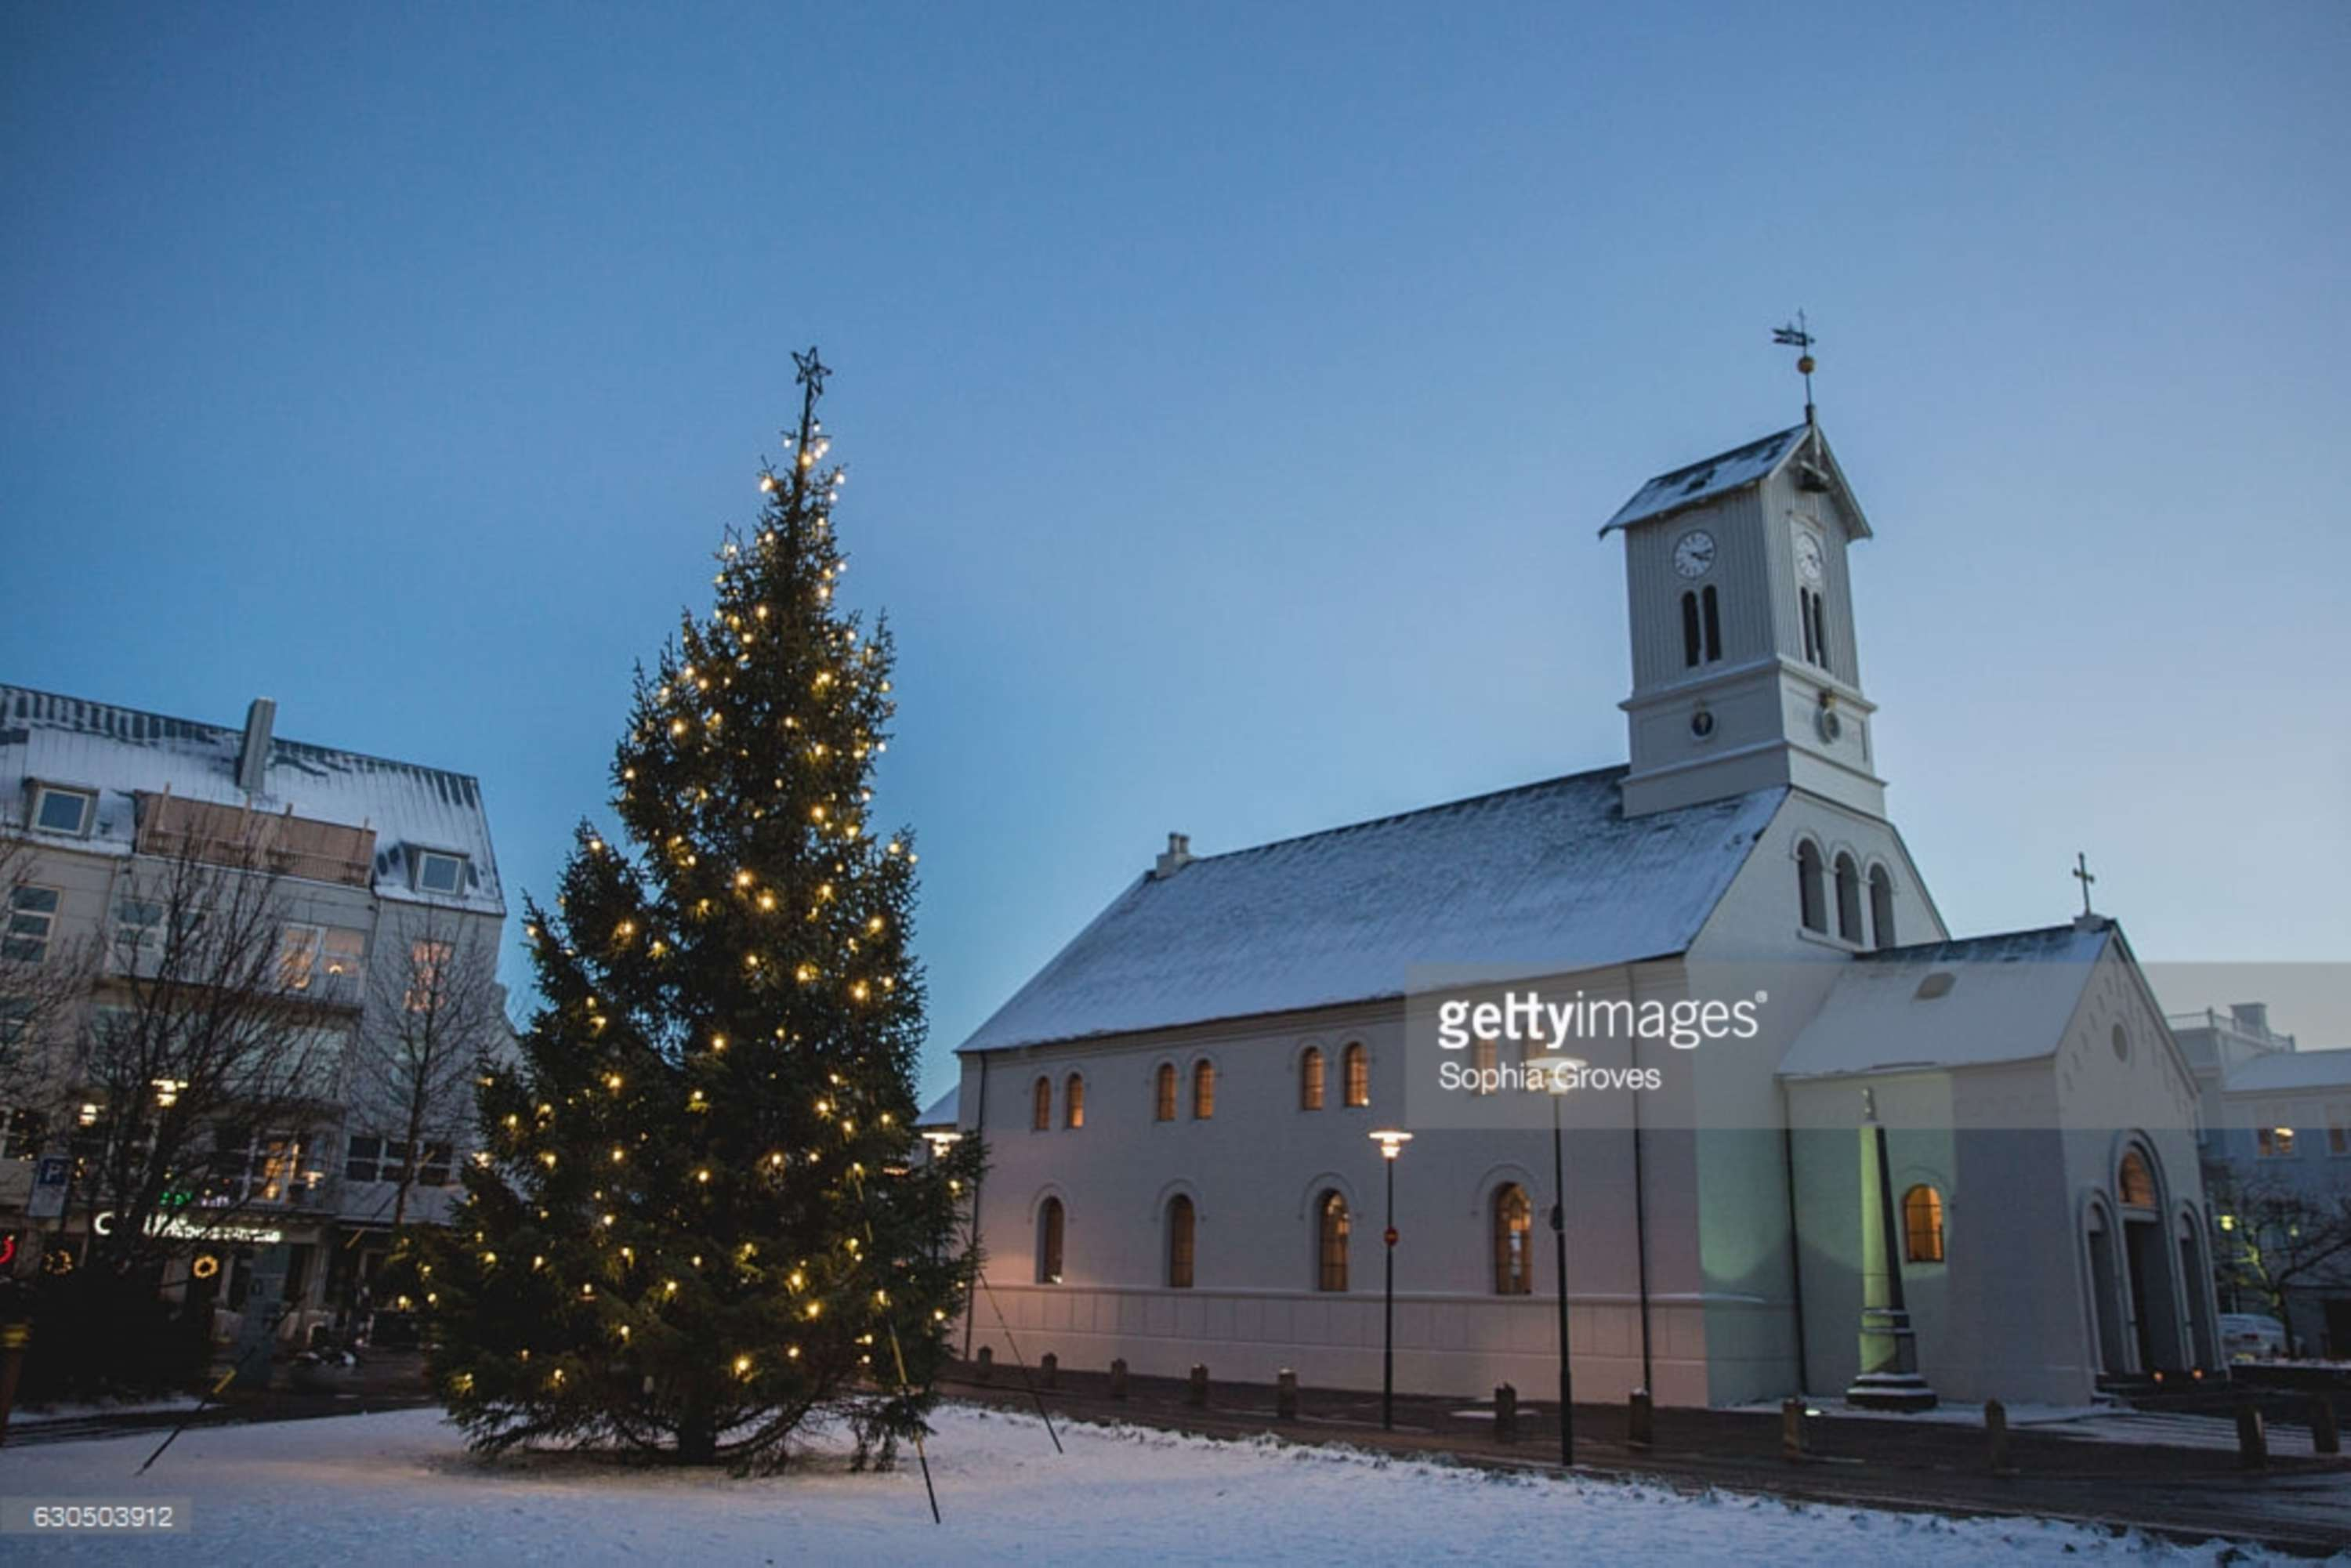 over christmas and new years 2016 i was on assignment for getty images as one of their contributing photographers to capture the beauty and life of - Christmas In Iceland